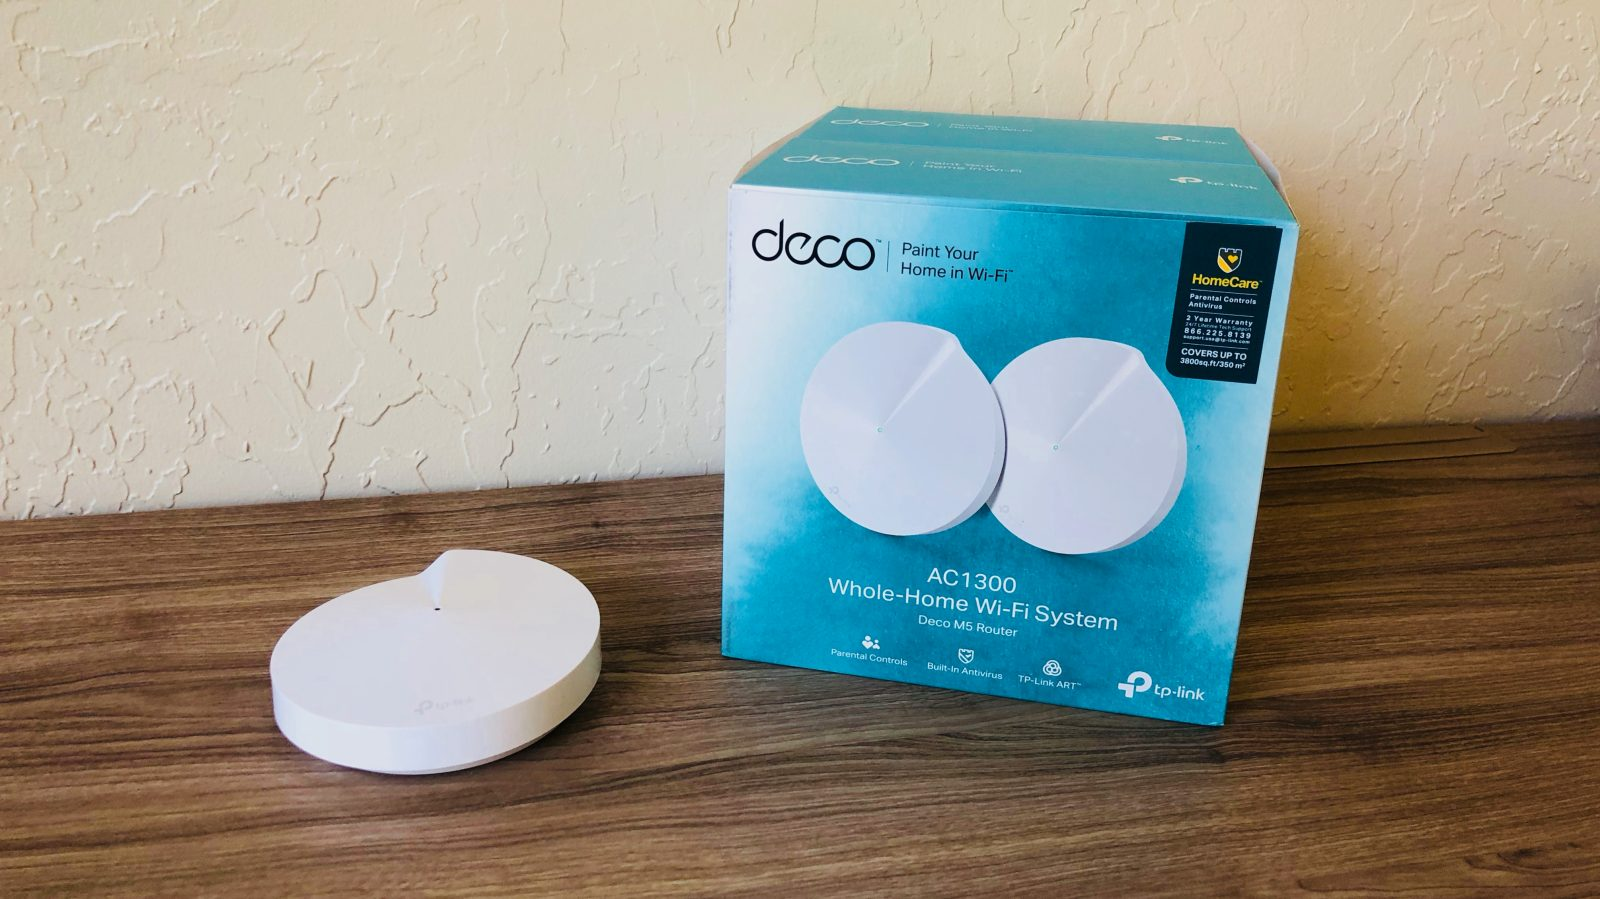 Review: TP-Link's slim deco offers mesh Wi-Fi at AirPort price - 9to5Mac